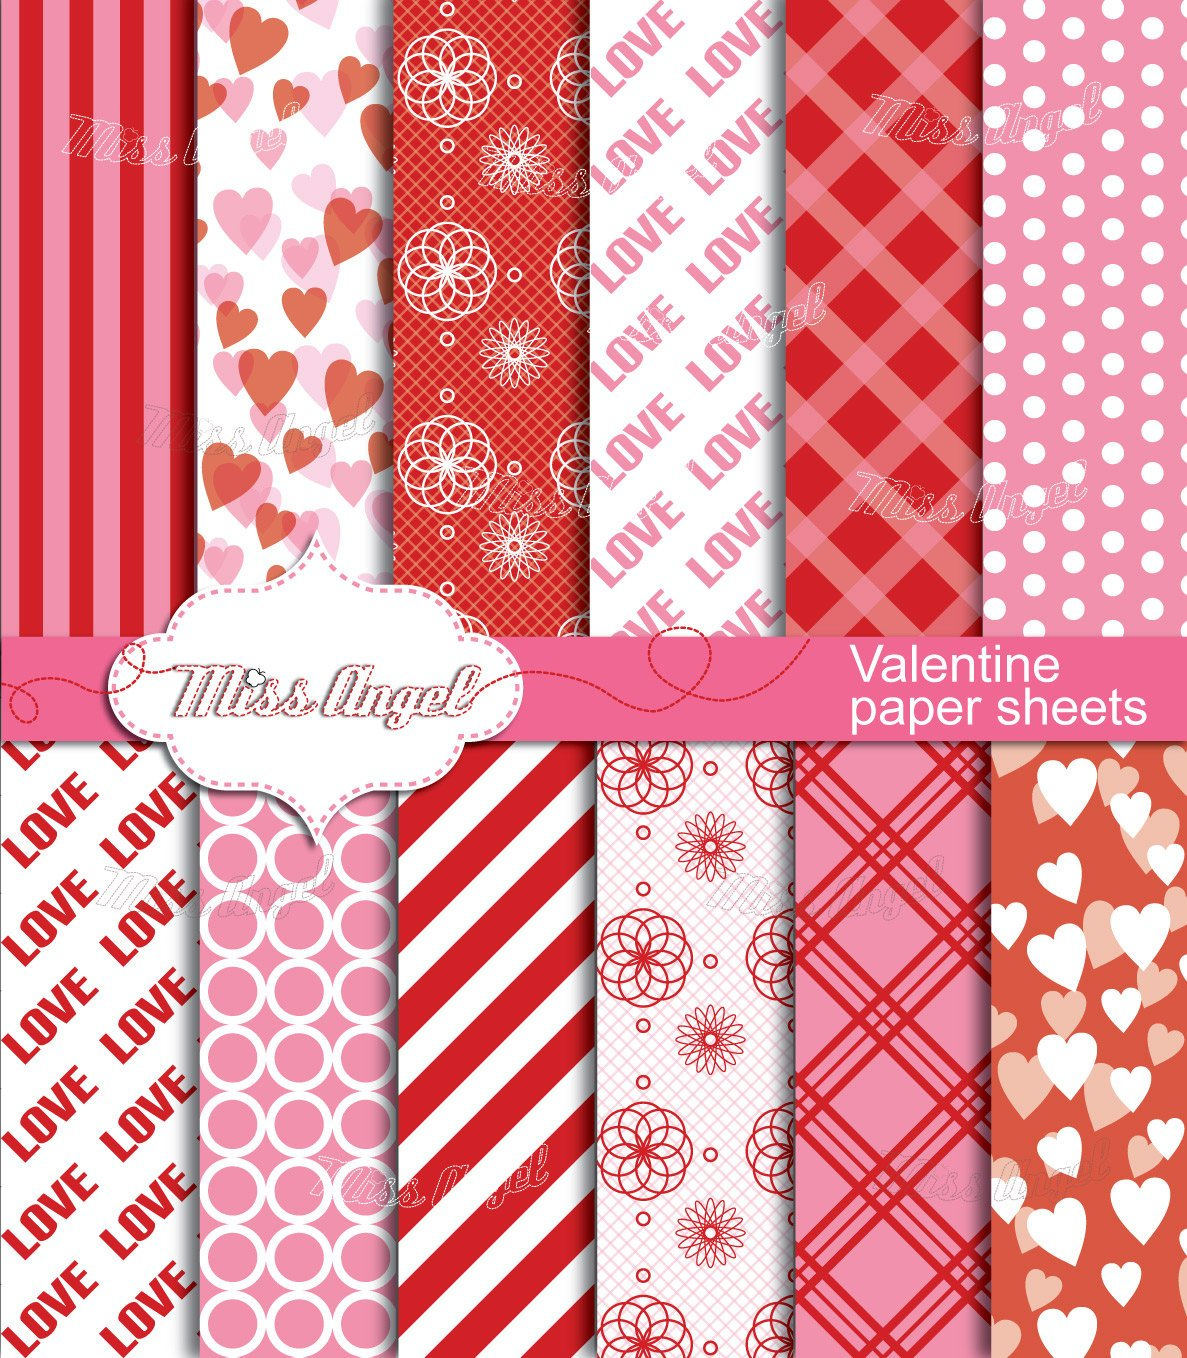 Valentines Digital Sheets. Buy 2 Get 1 Free Buy 4 Get 2 Free | Etsy - Free Printable Pattern Paper Sheets